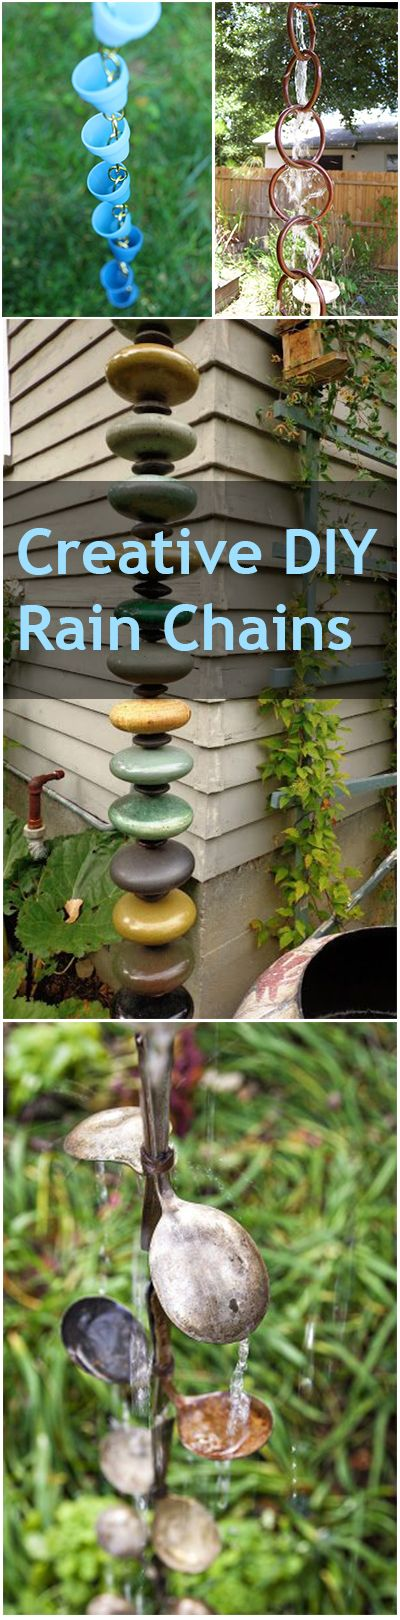 Creative DIY Rain Chains great ideas for